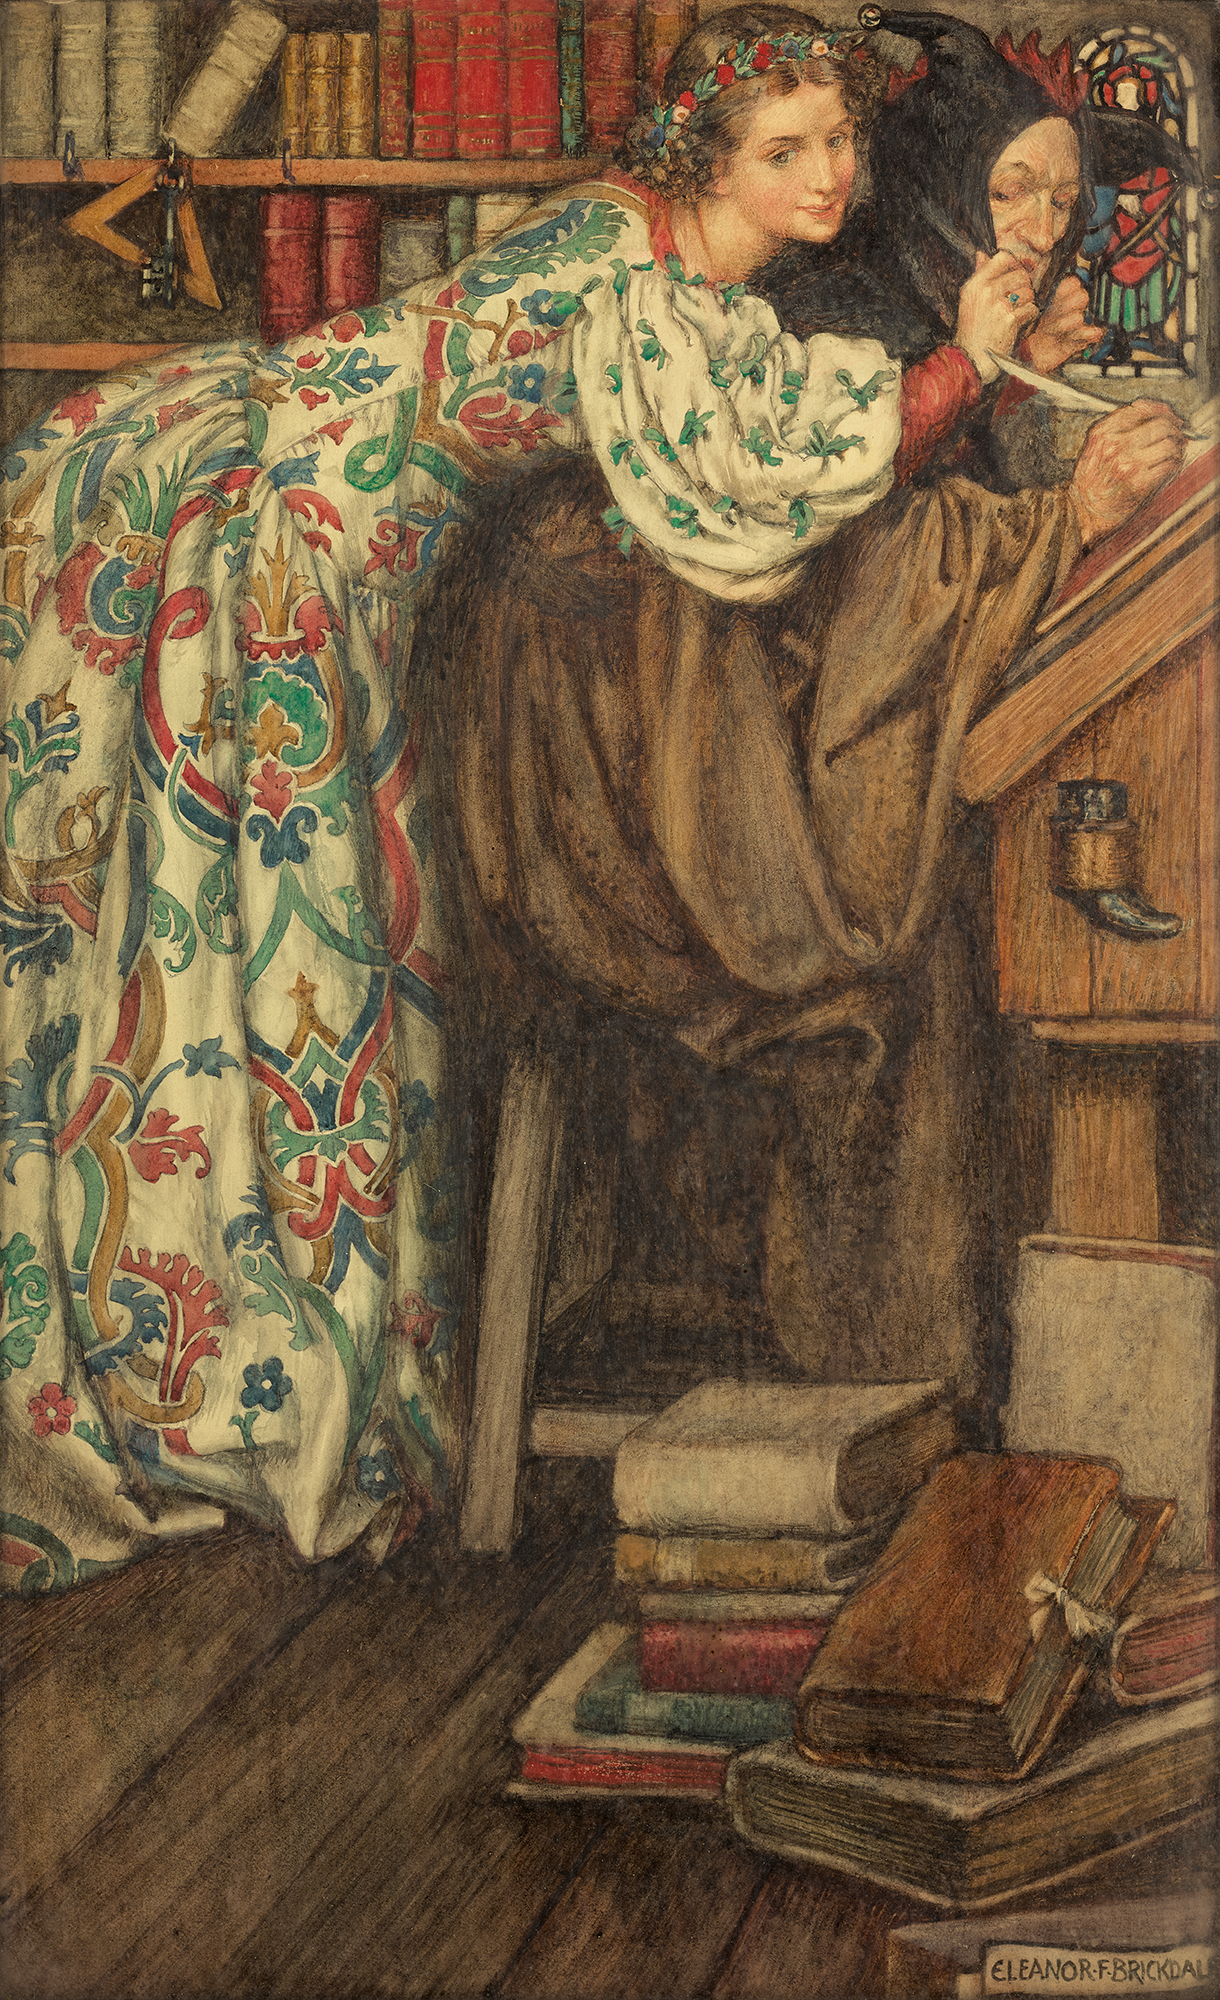 ELEANOR FORTESCUE-BRICKDALE, R.W.S. | The Cap that Fits